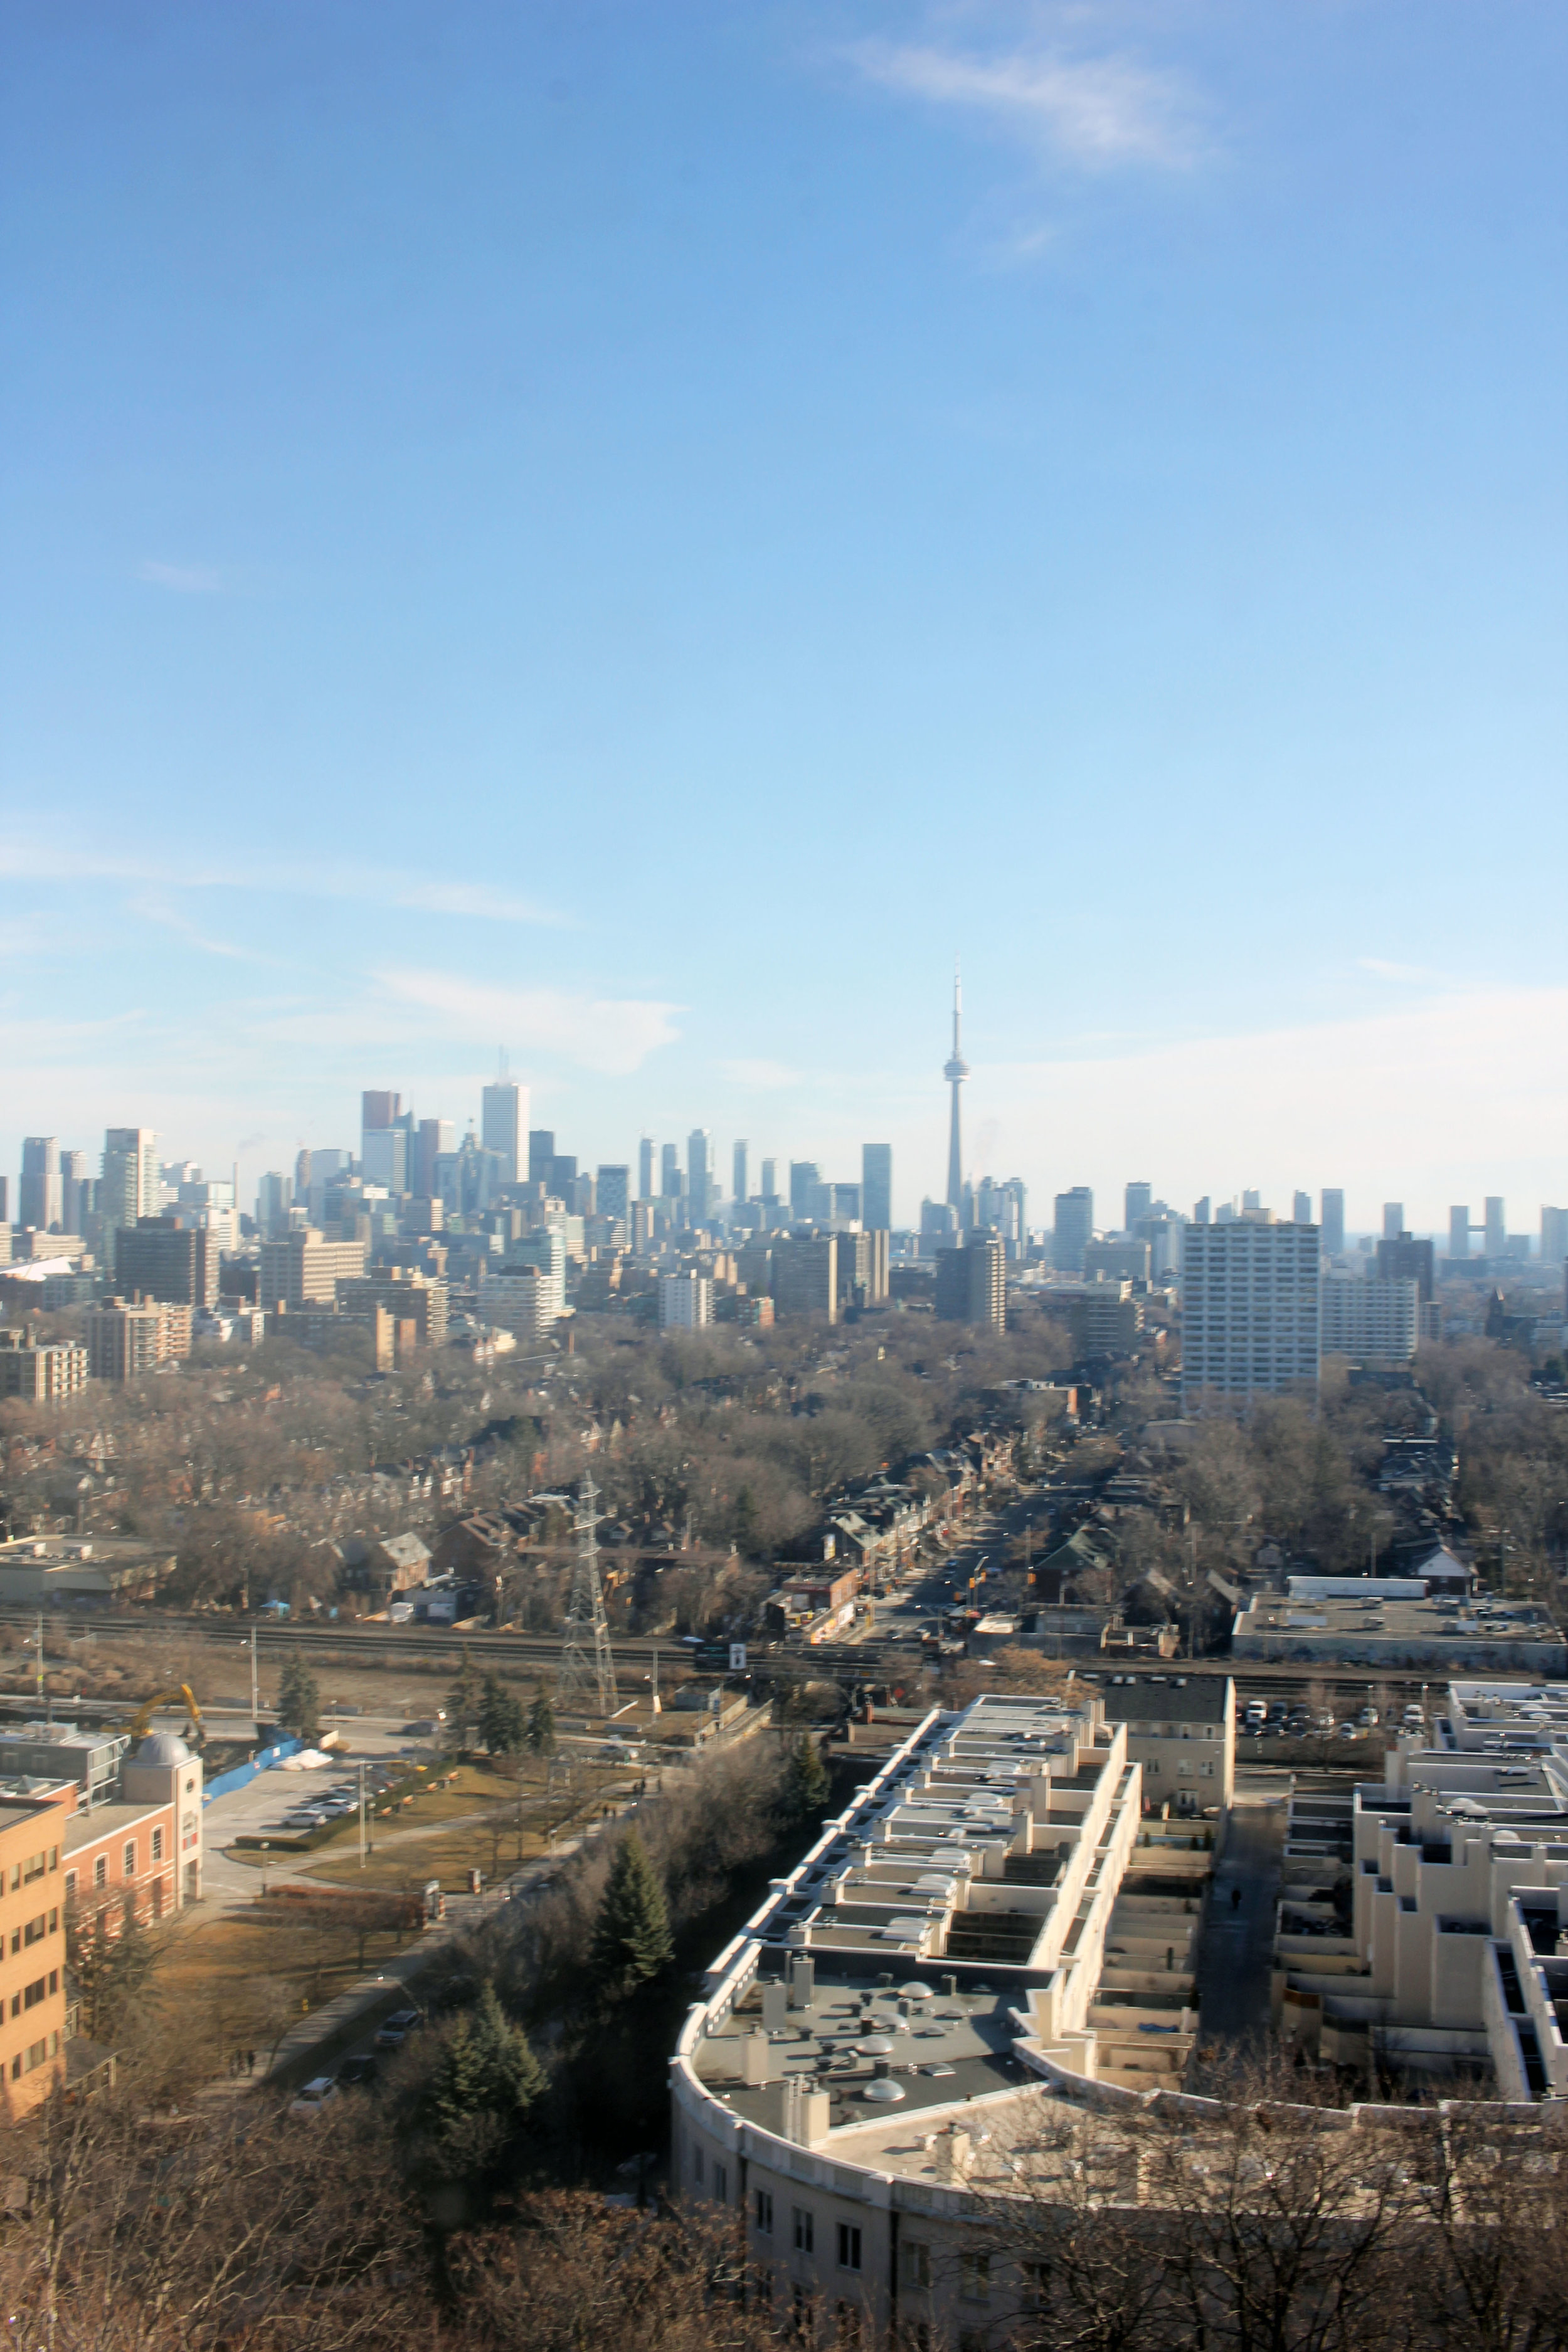 Views of the 6 from the tallest tower.